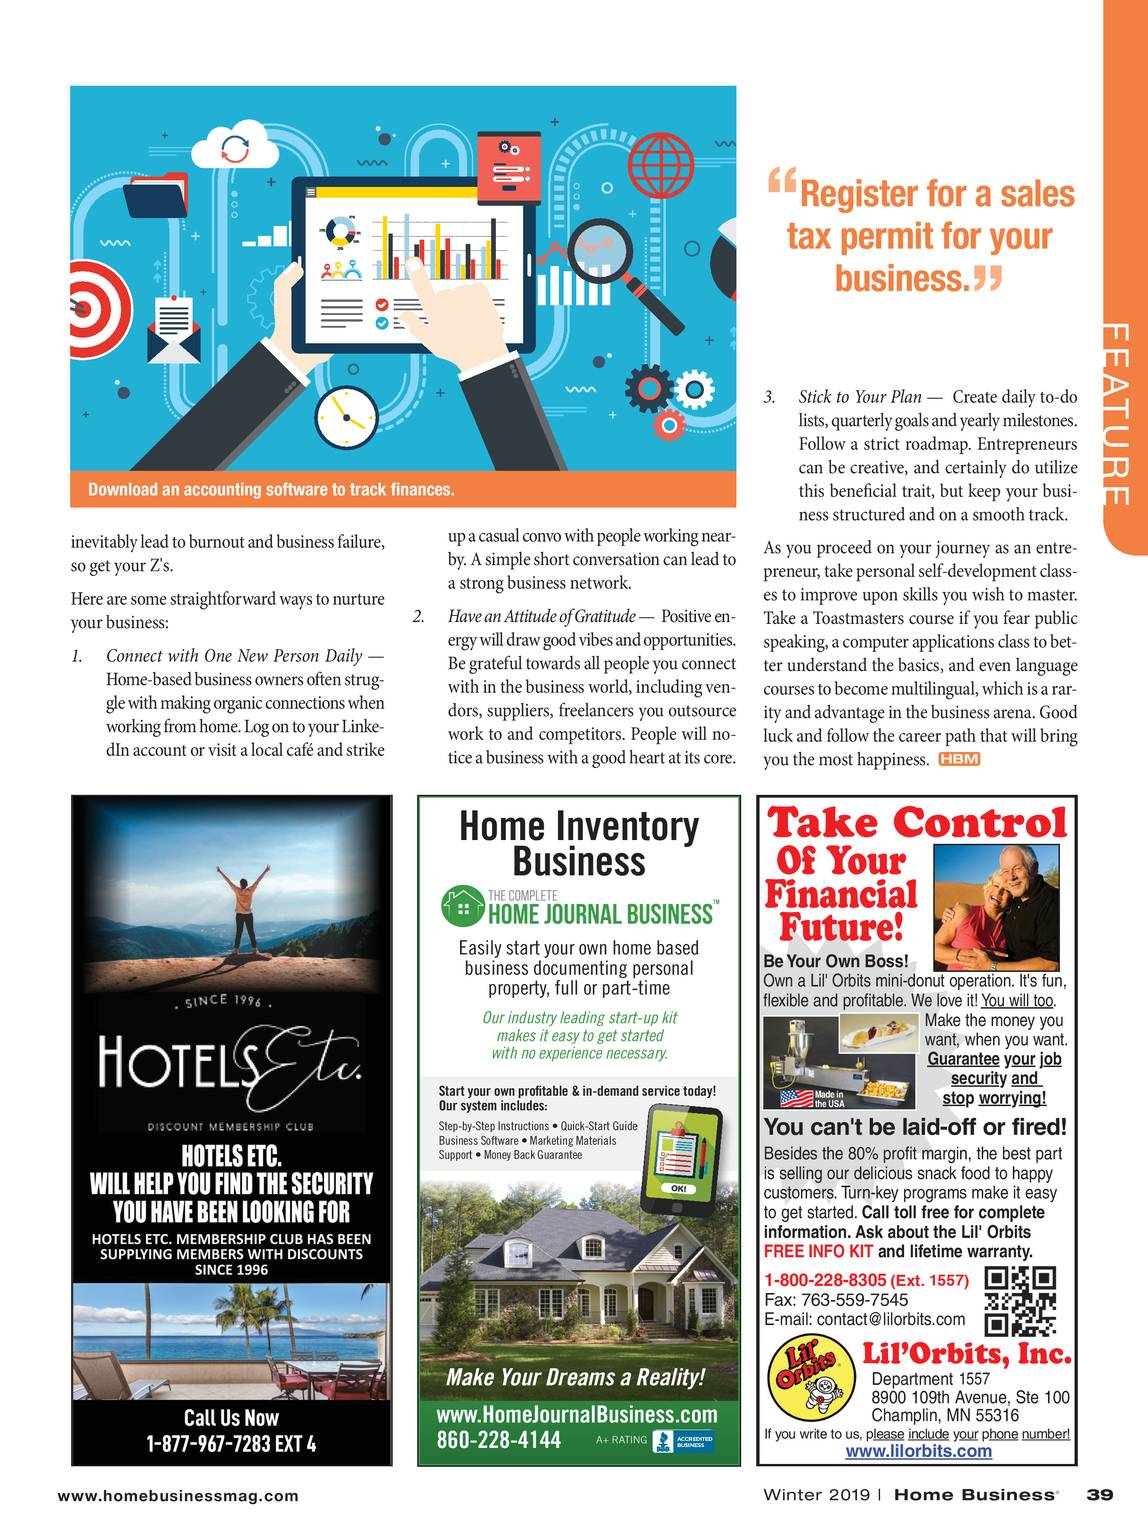 Home Business Magazine - Winter 2019 - page 38